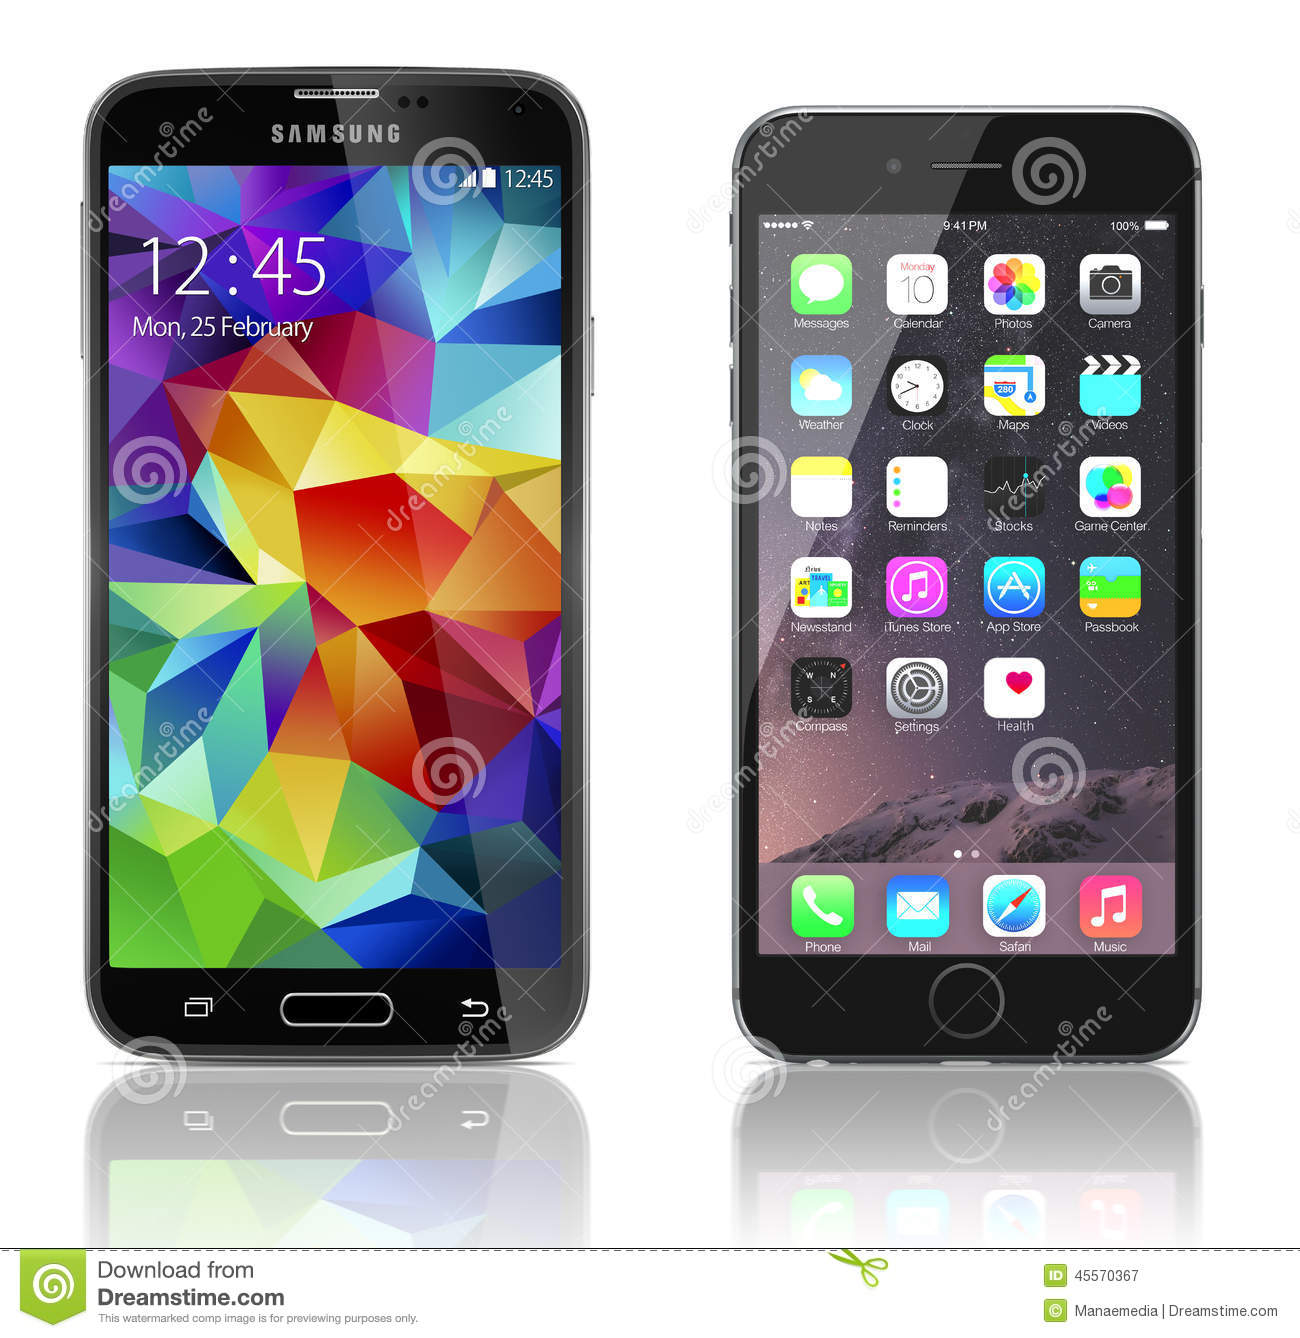 Galaxia S5 de Samsung contra el iPhone 6 de Apple